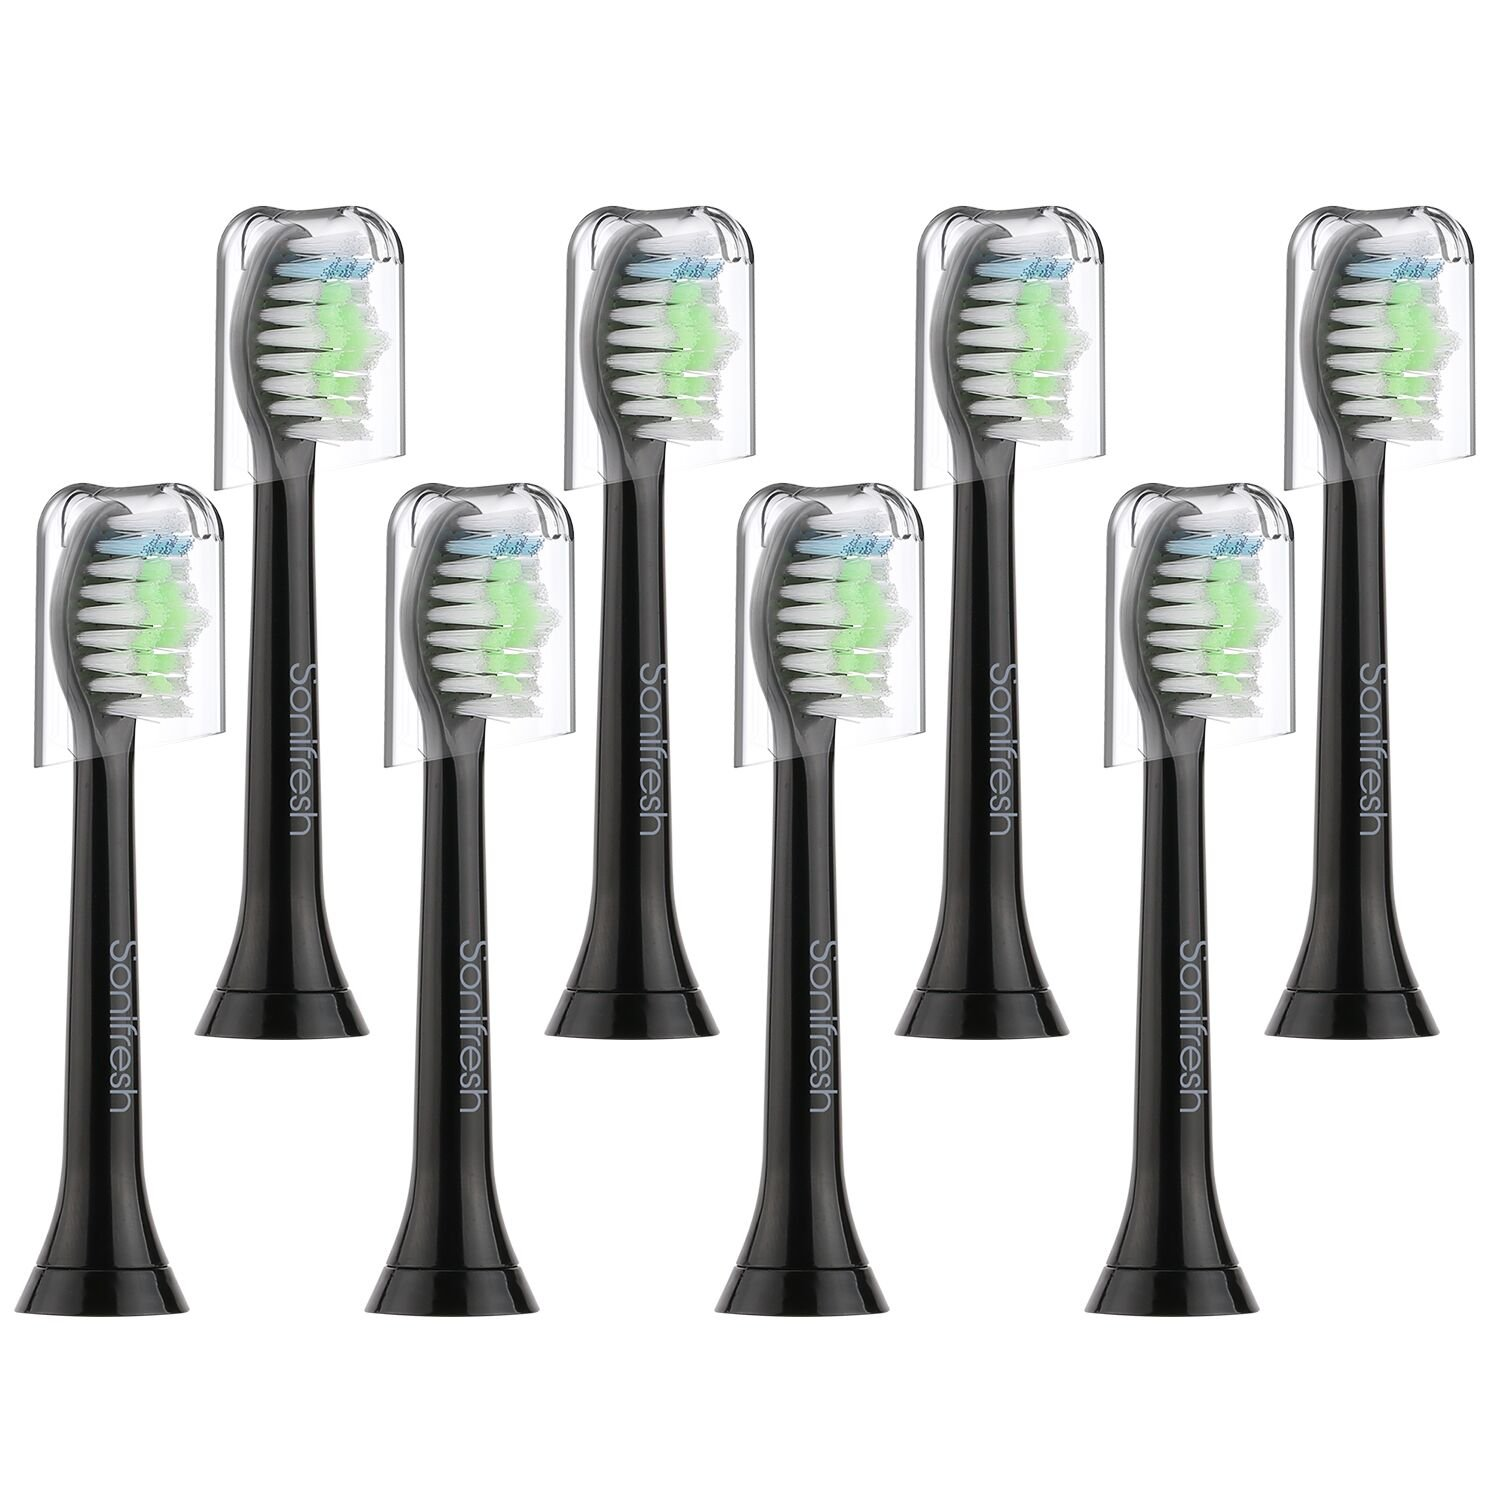 Sonifresh Sonicare Replacement Heads, Sonicare Toothbrush Heads For Phillips Sonicare Electric Toothbrush- Fits Plaque Control, Gum Health, DiamondClean, Flexcare, EasyClean, and HealthyWhite, 8 Pack